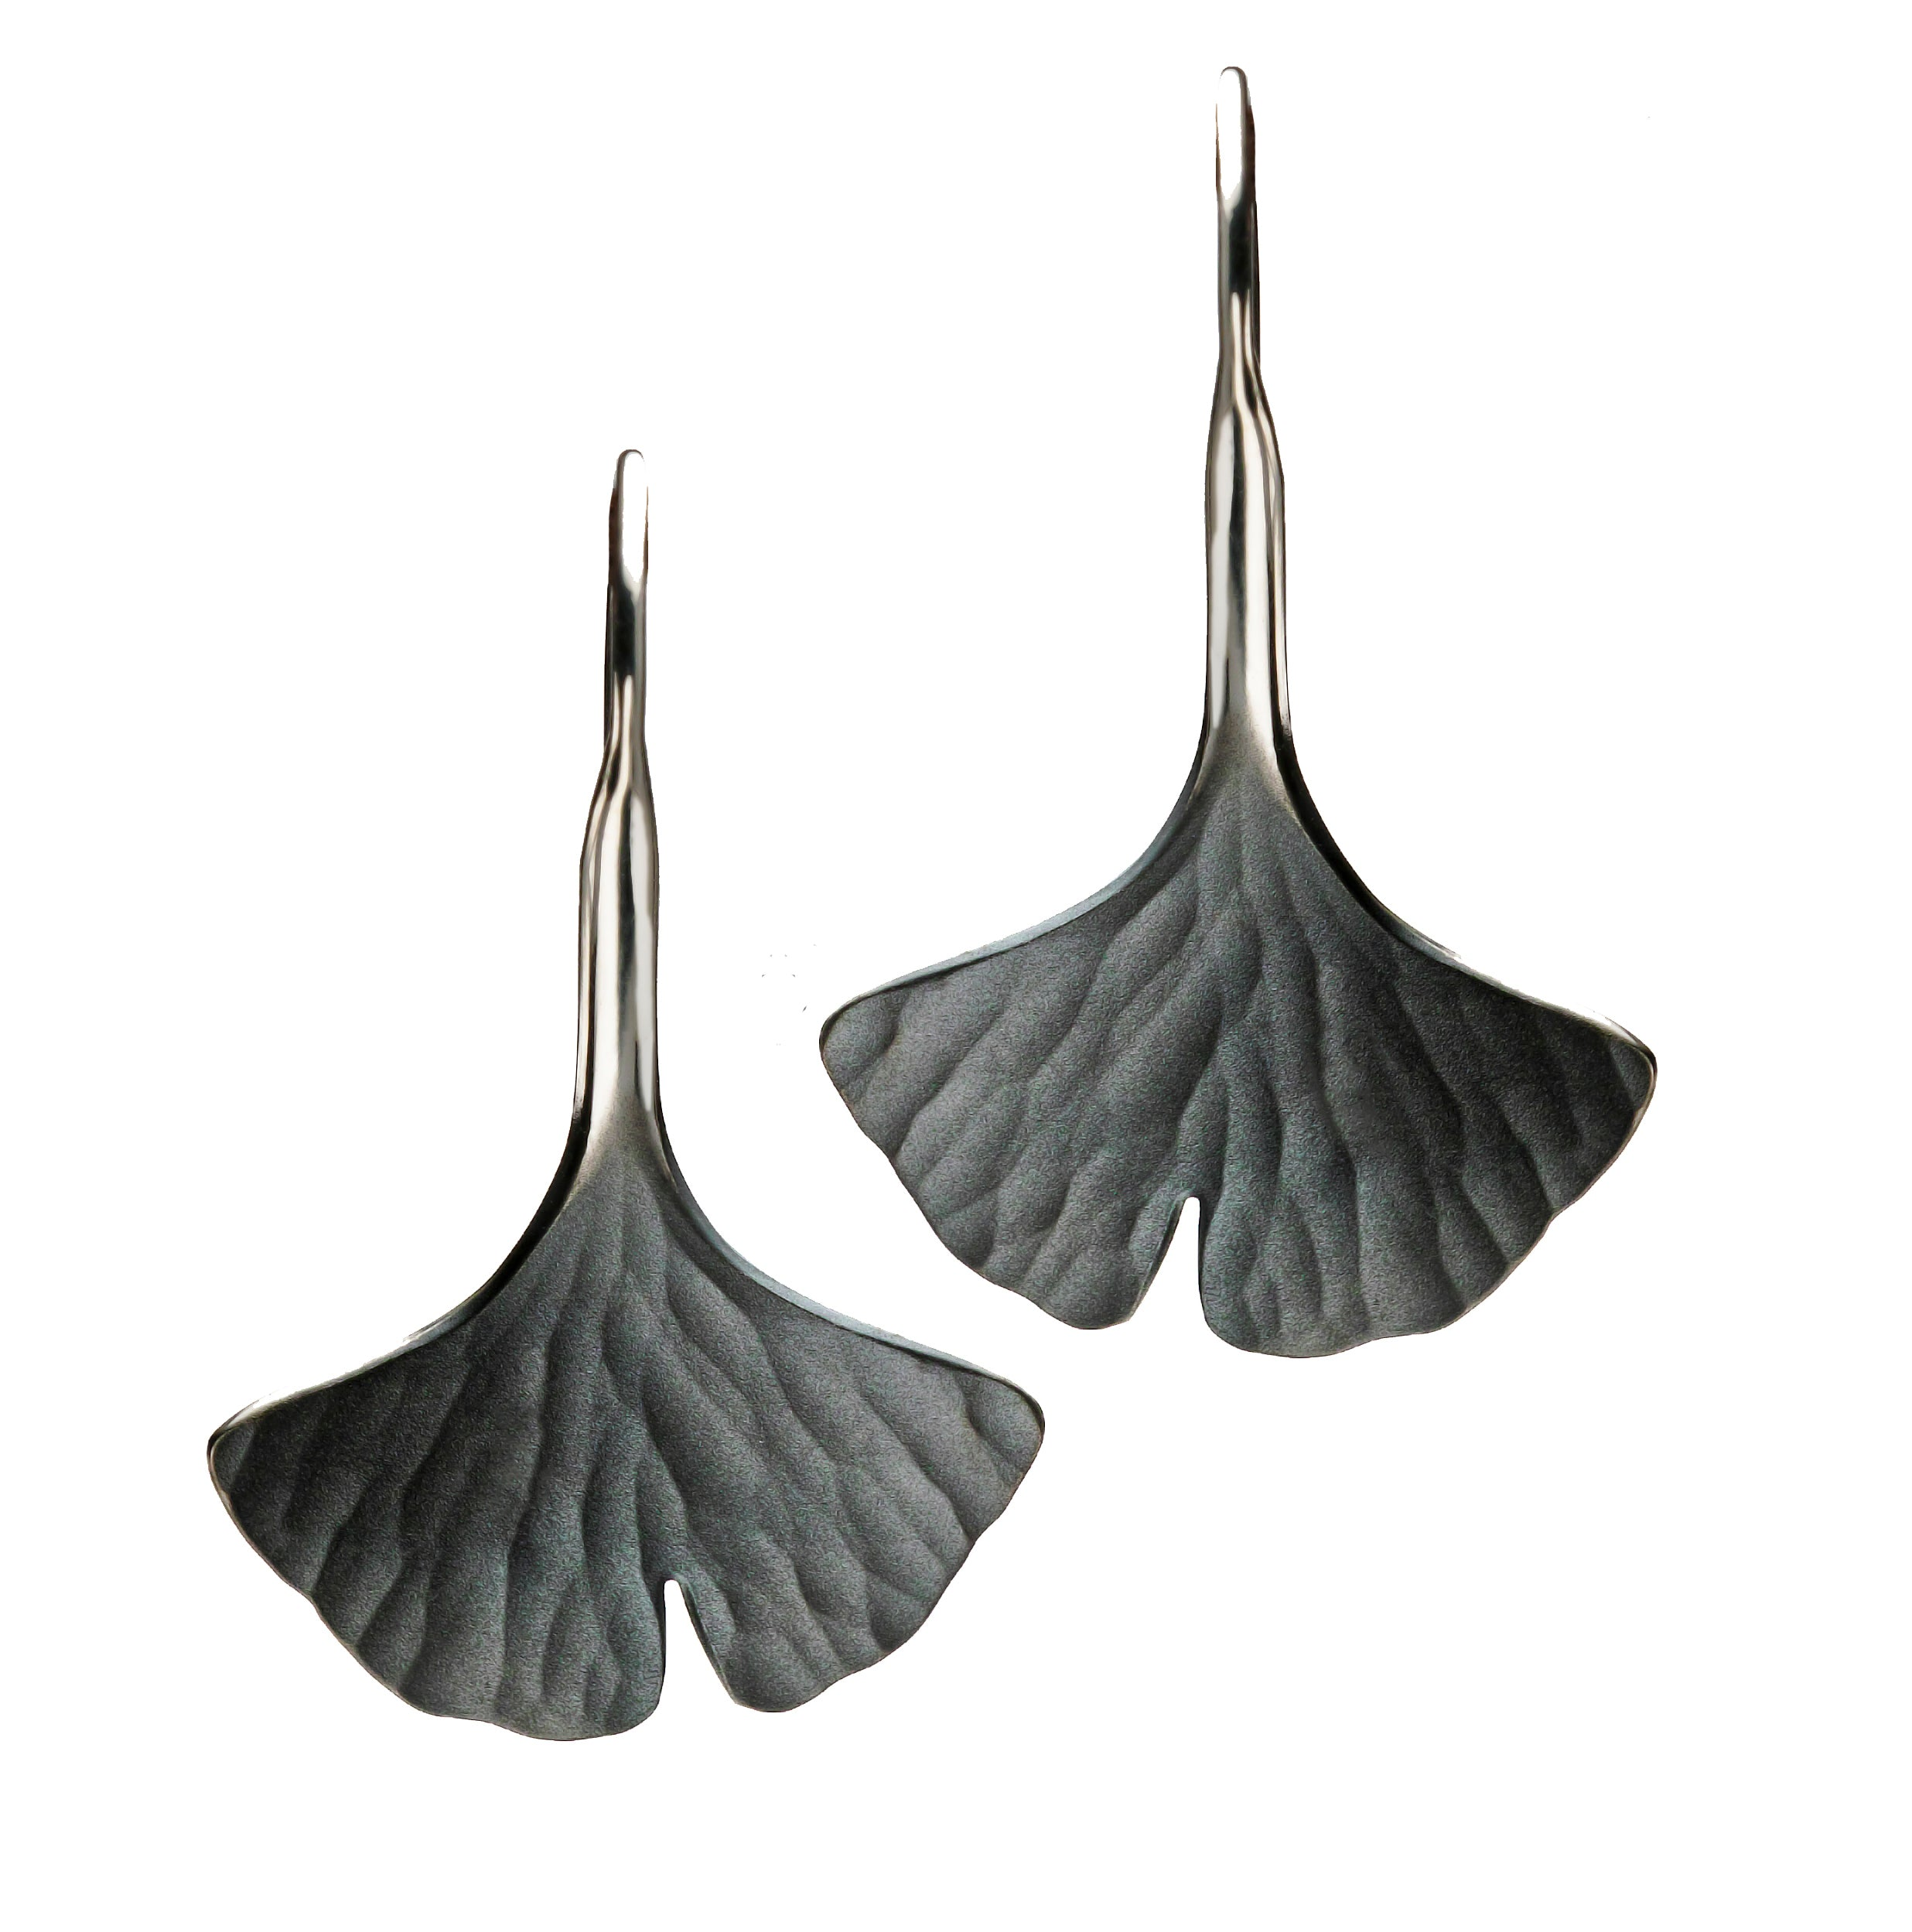 Toby Pomeroy Eco Silver Ginko Leaf Earrings